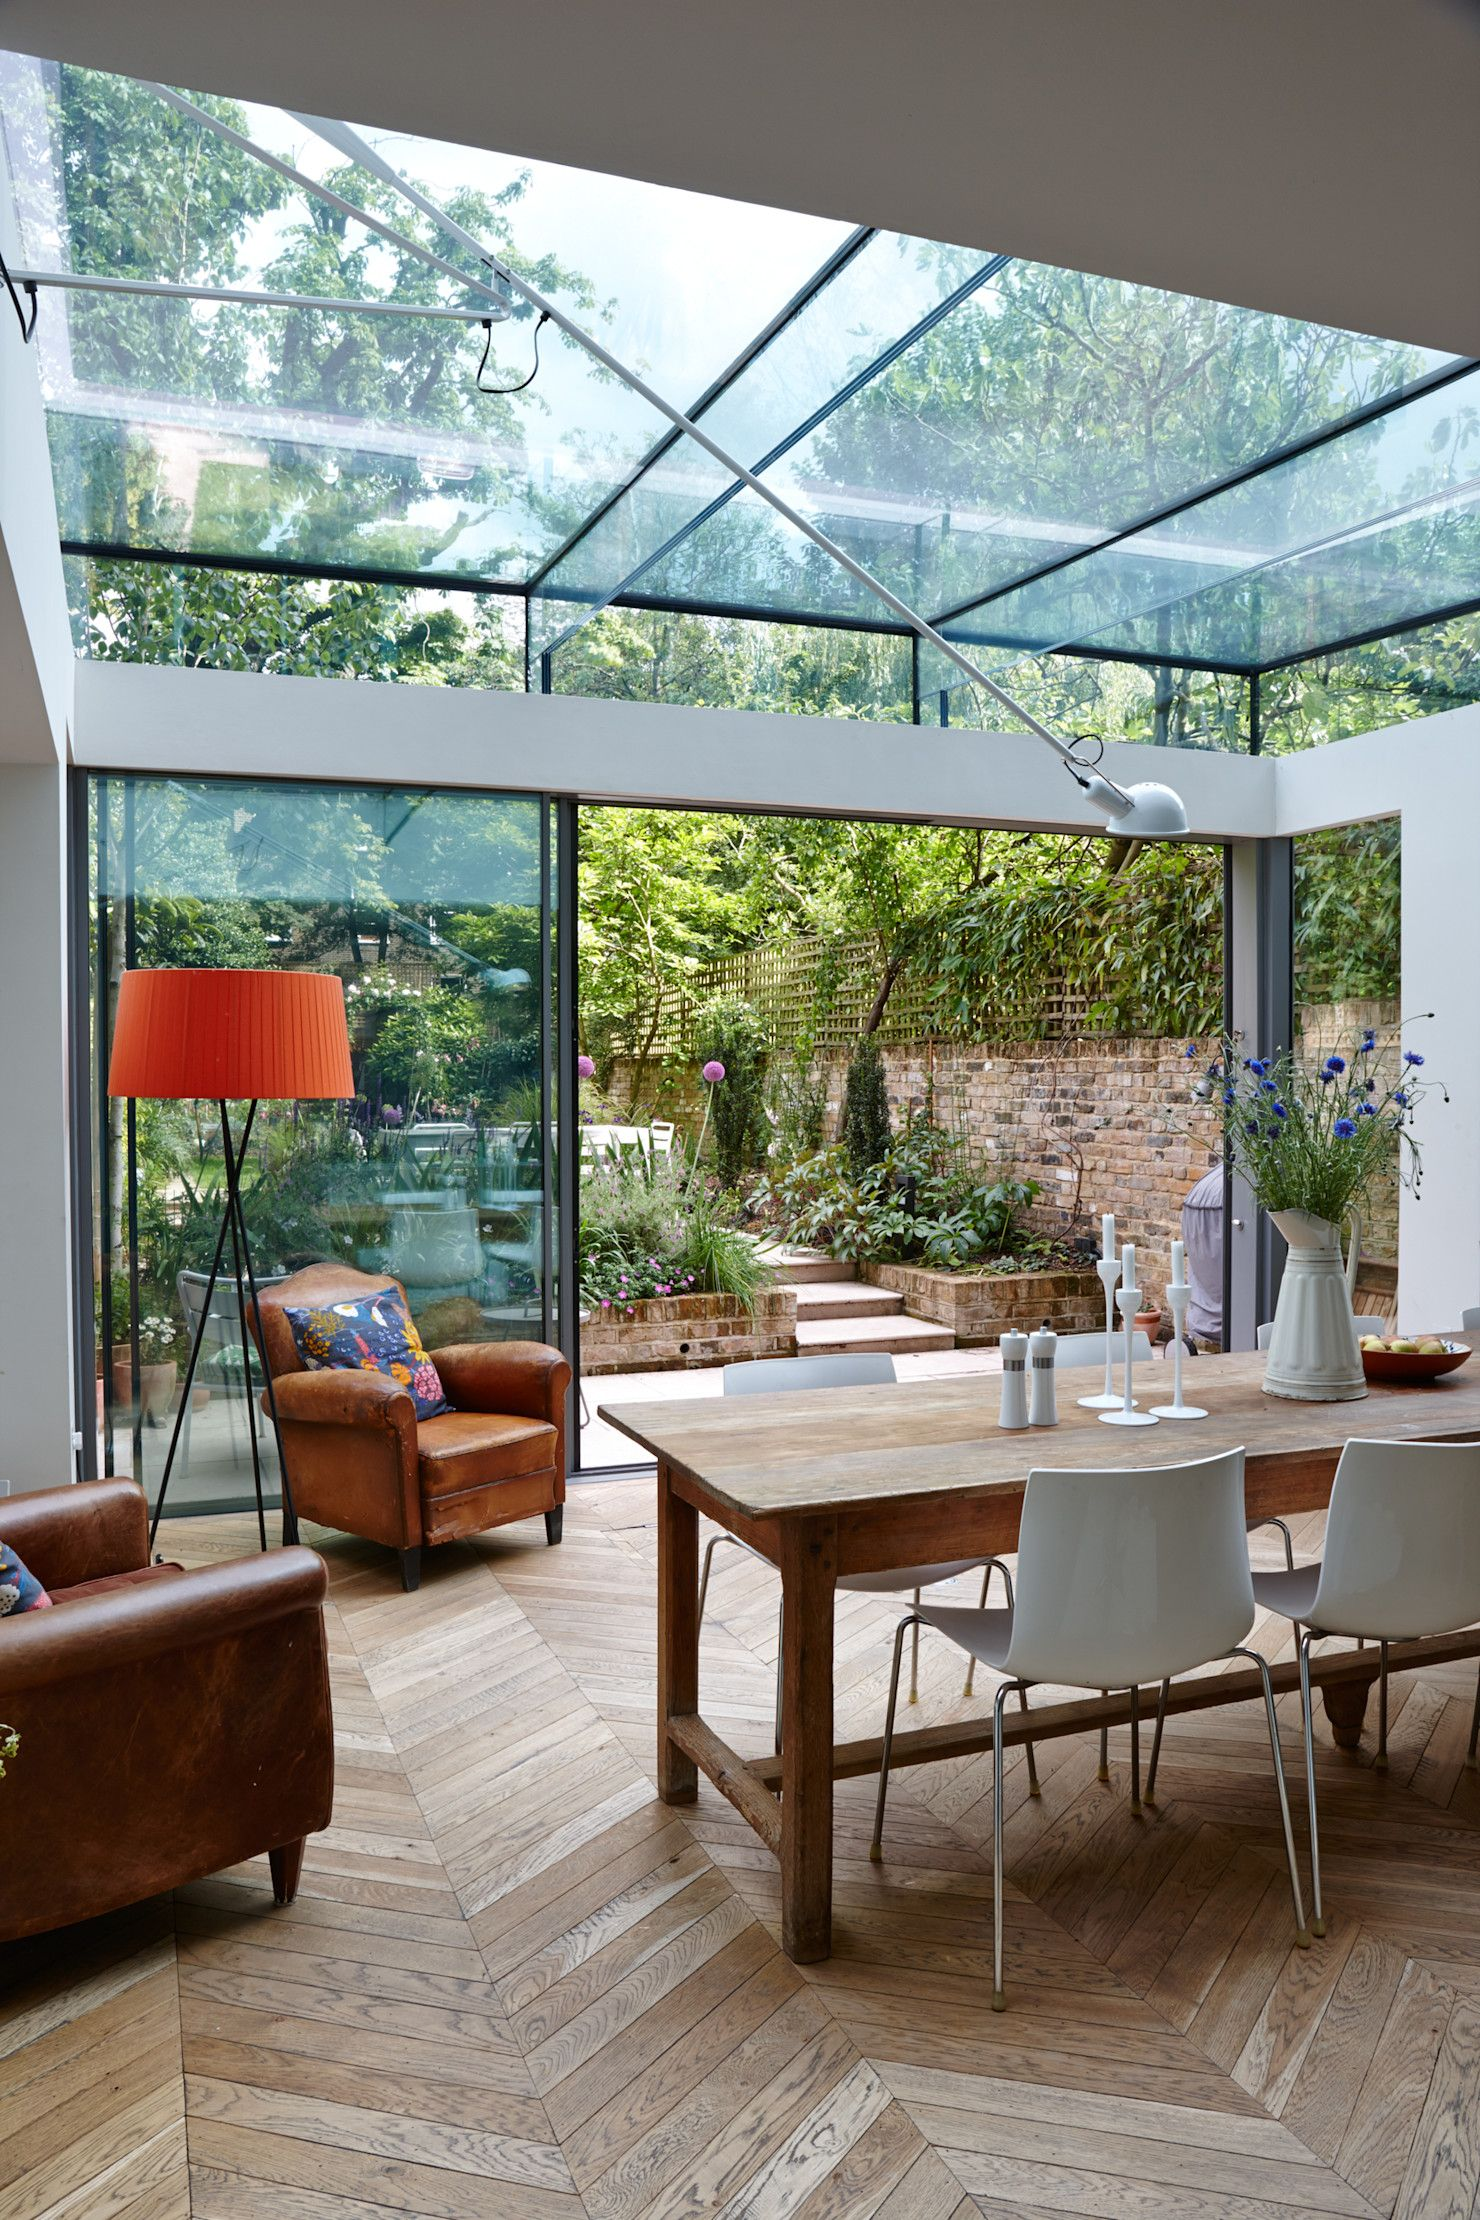 Single Storey Rear Structurally Glazed Extension With Minimal Frame Triple Track Sliding Doors Homify In 2020 Room Extensions Conservatory Decor House Design